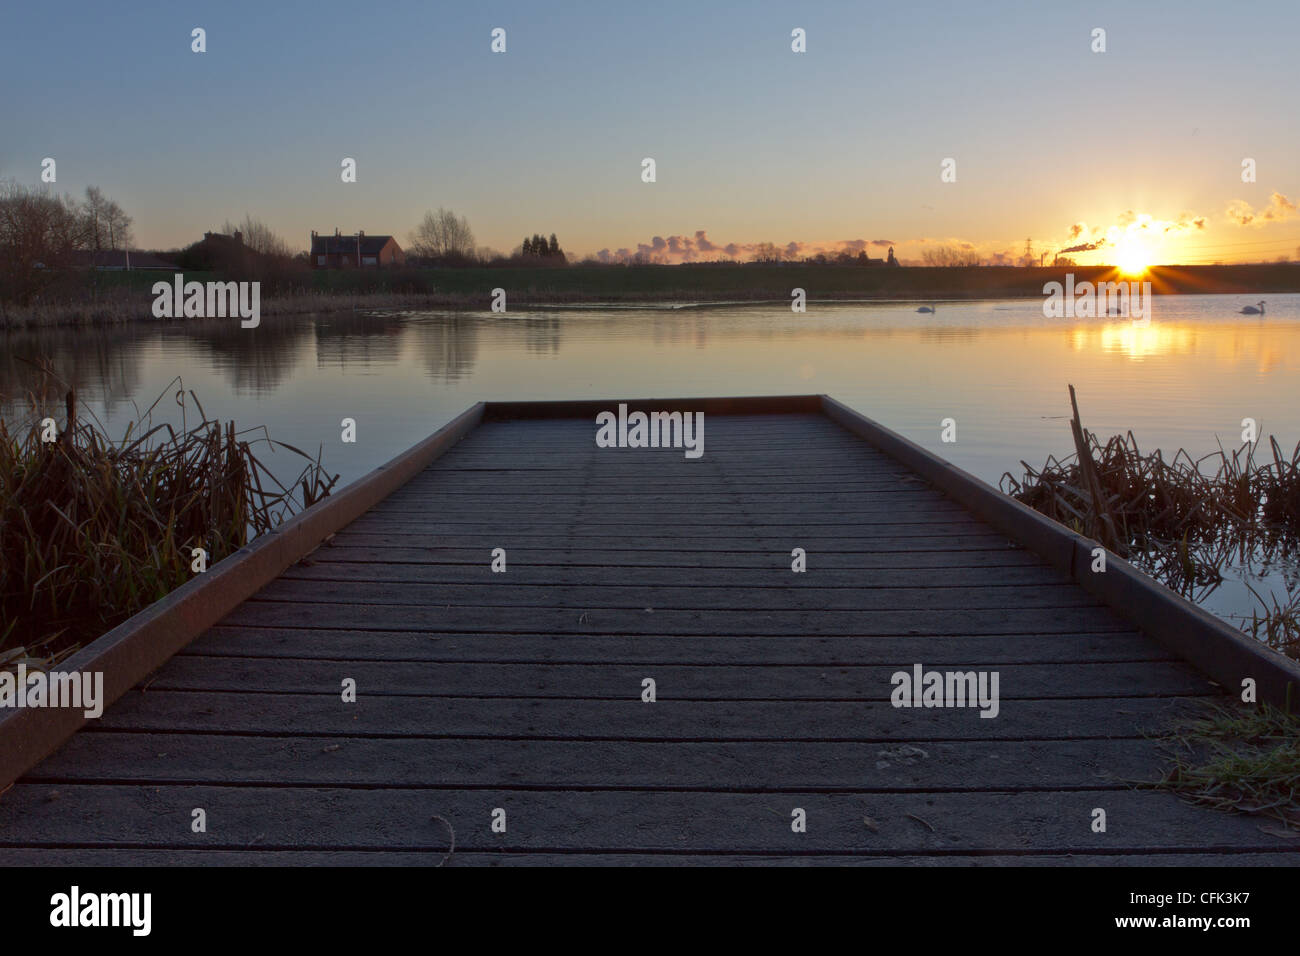 Swan lake, sunrise over a fishing pond - Stock Image